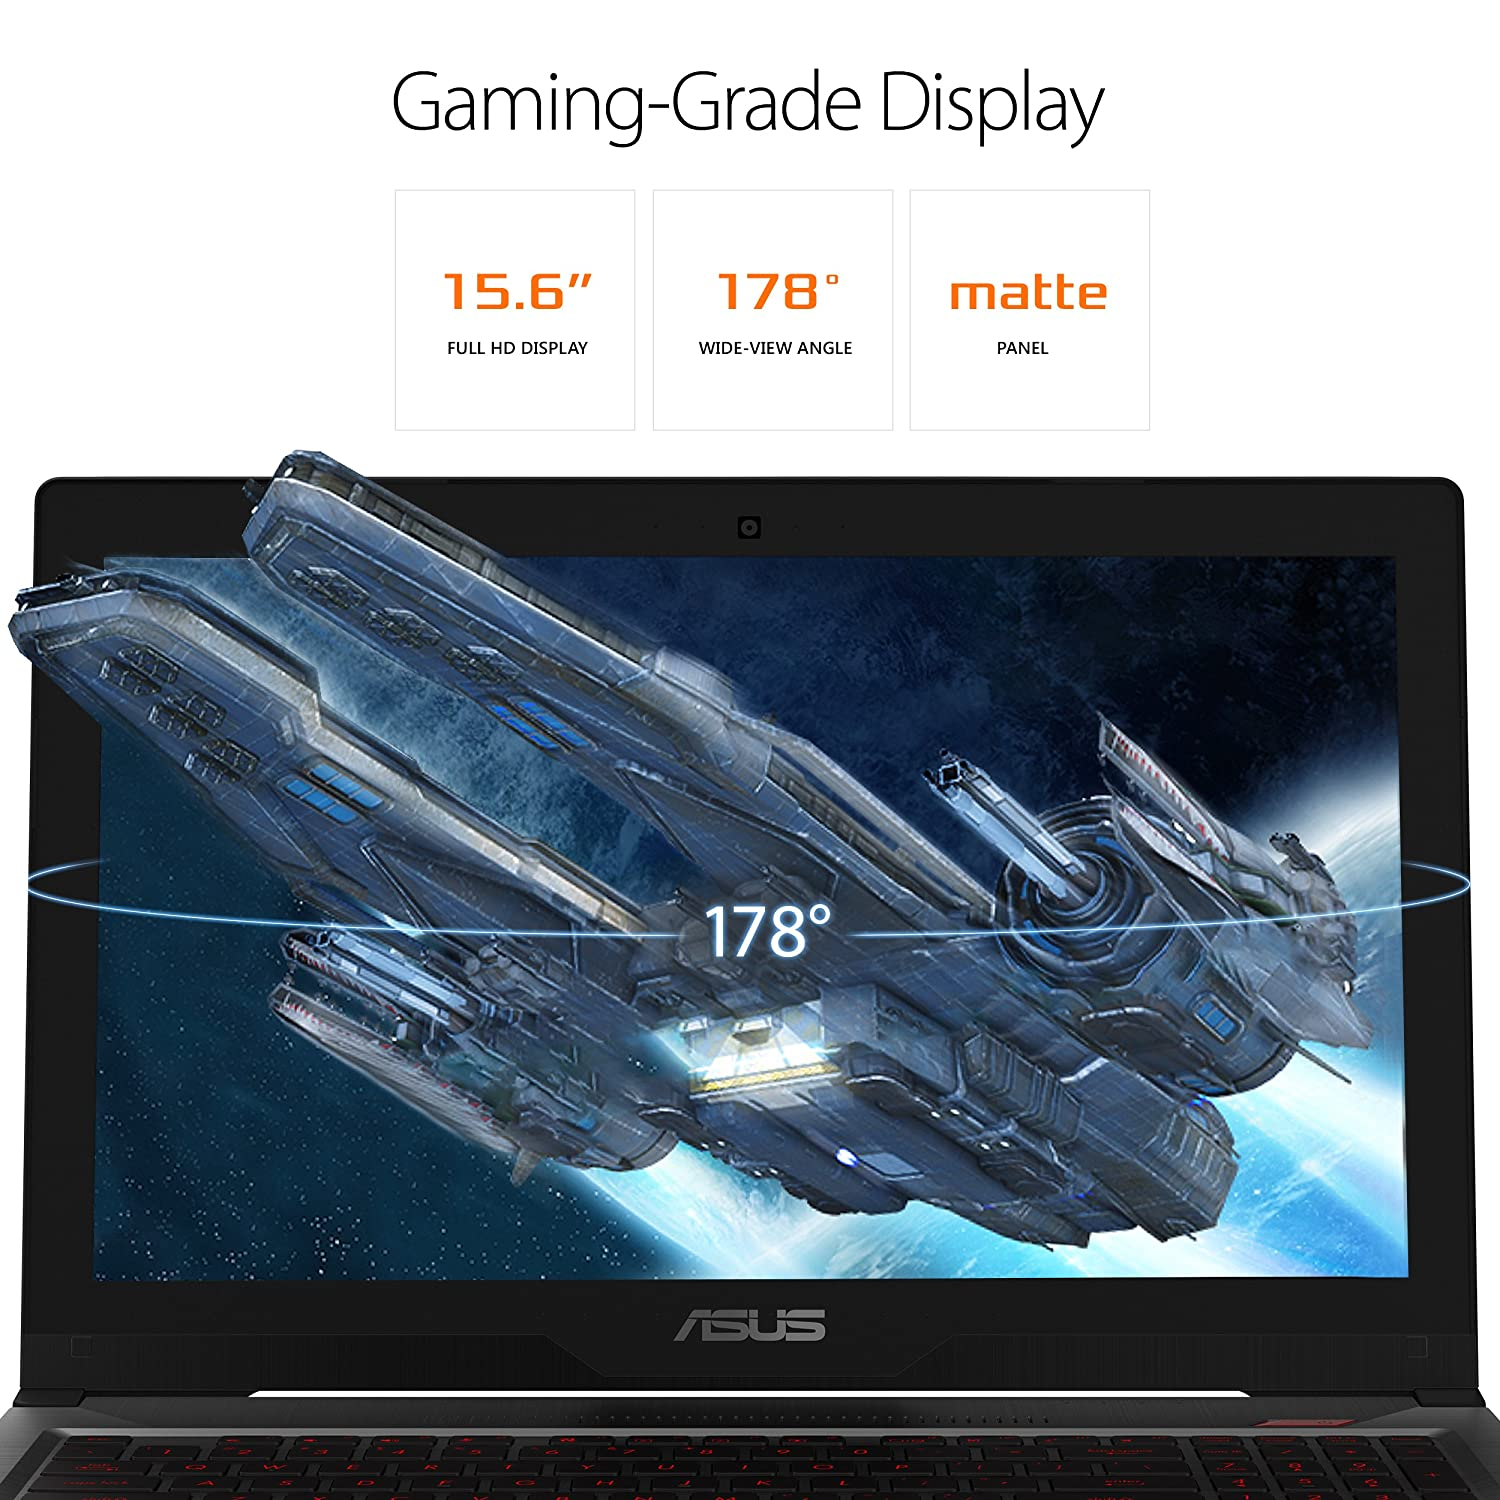 Asus Fx503vd 156 Fhd Powerful Gaming Laptop Intel Dell Inspiron 15 7567 I5 7300hq 4gb Gtx 1050 Ti 156ampquot Red Core I7 7700hq Quad 28ghz Turbo Up To 38ghz Processor